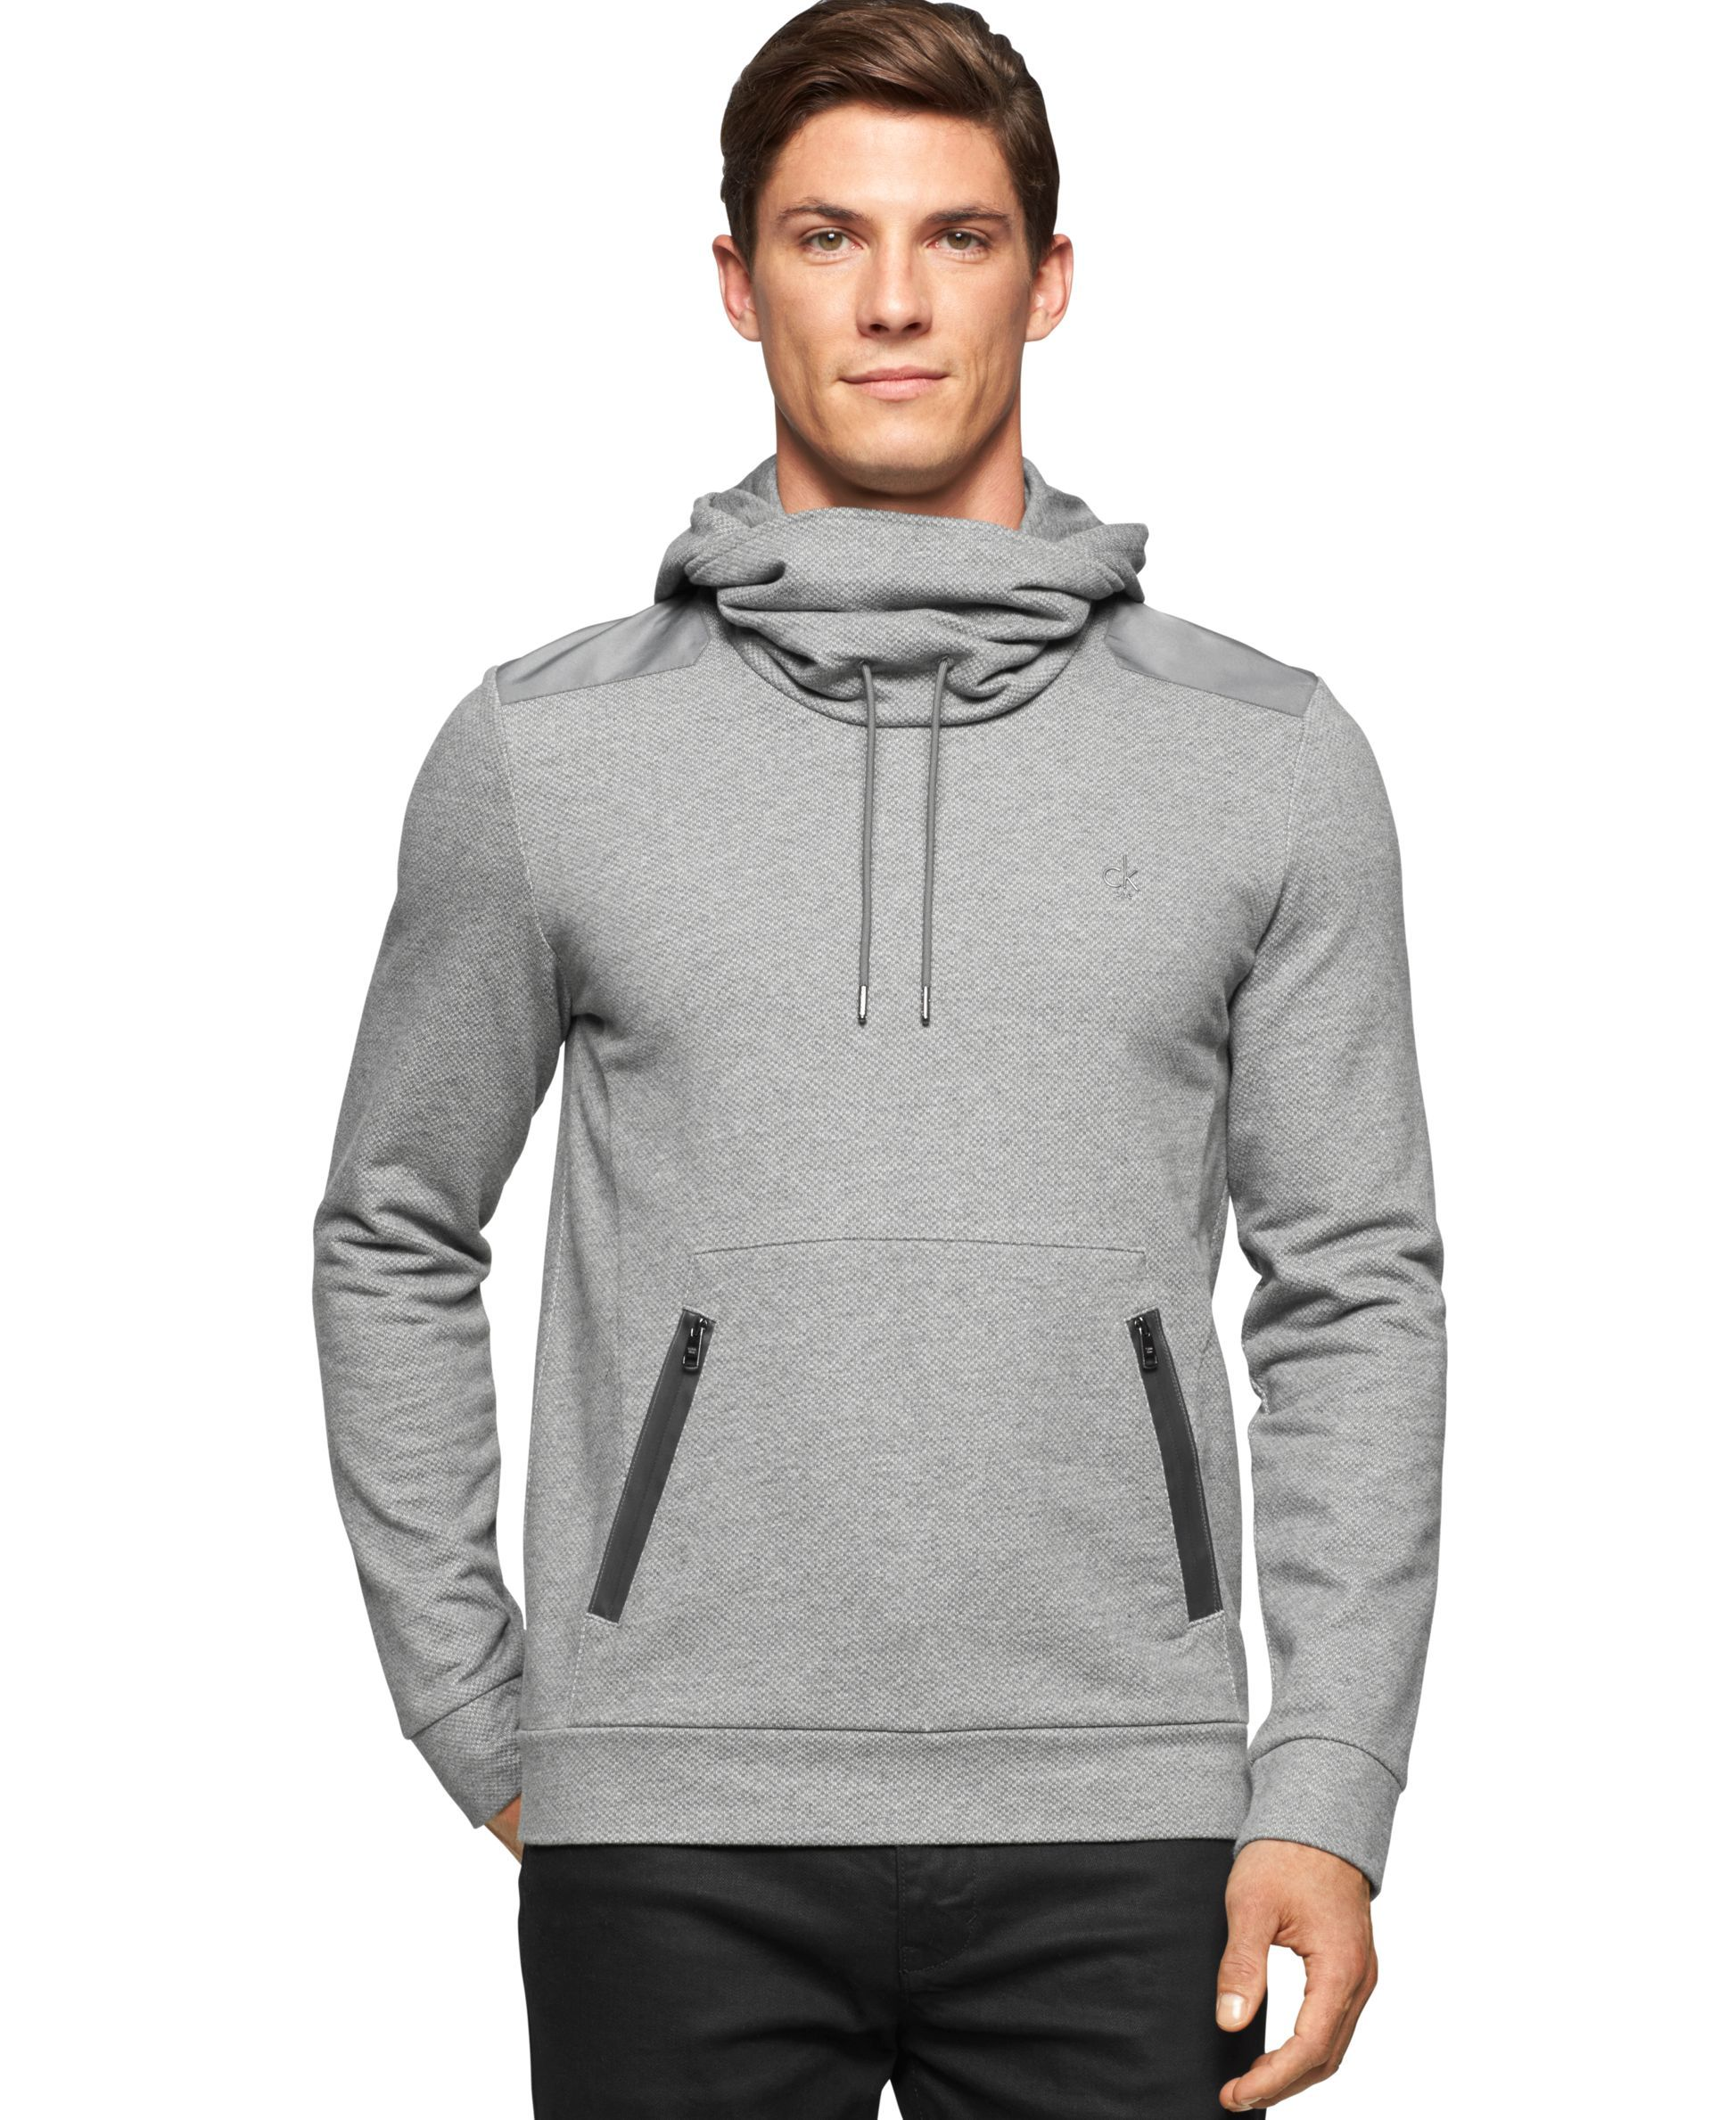 calvin klein funnel neck pullover sweatshirt hoodie pinterest. Black Bedroom Furniture Sets. Home Design Ideas